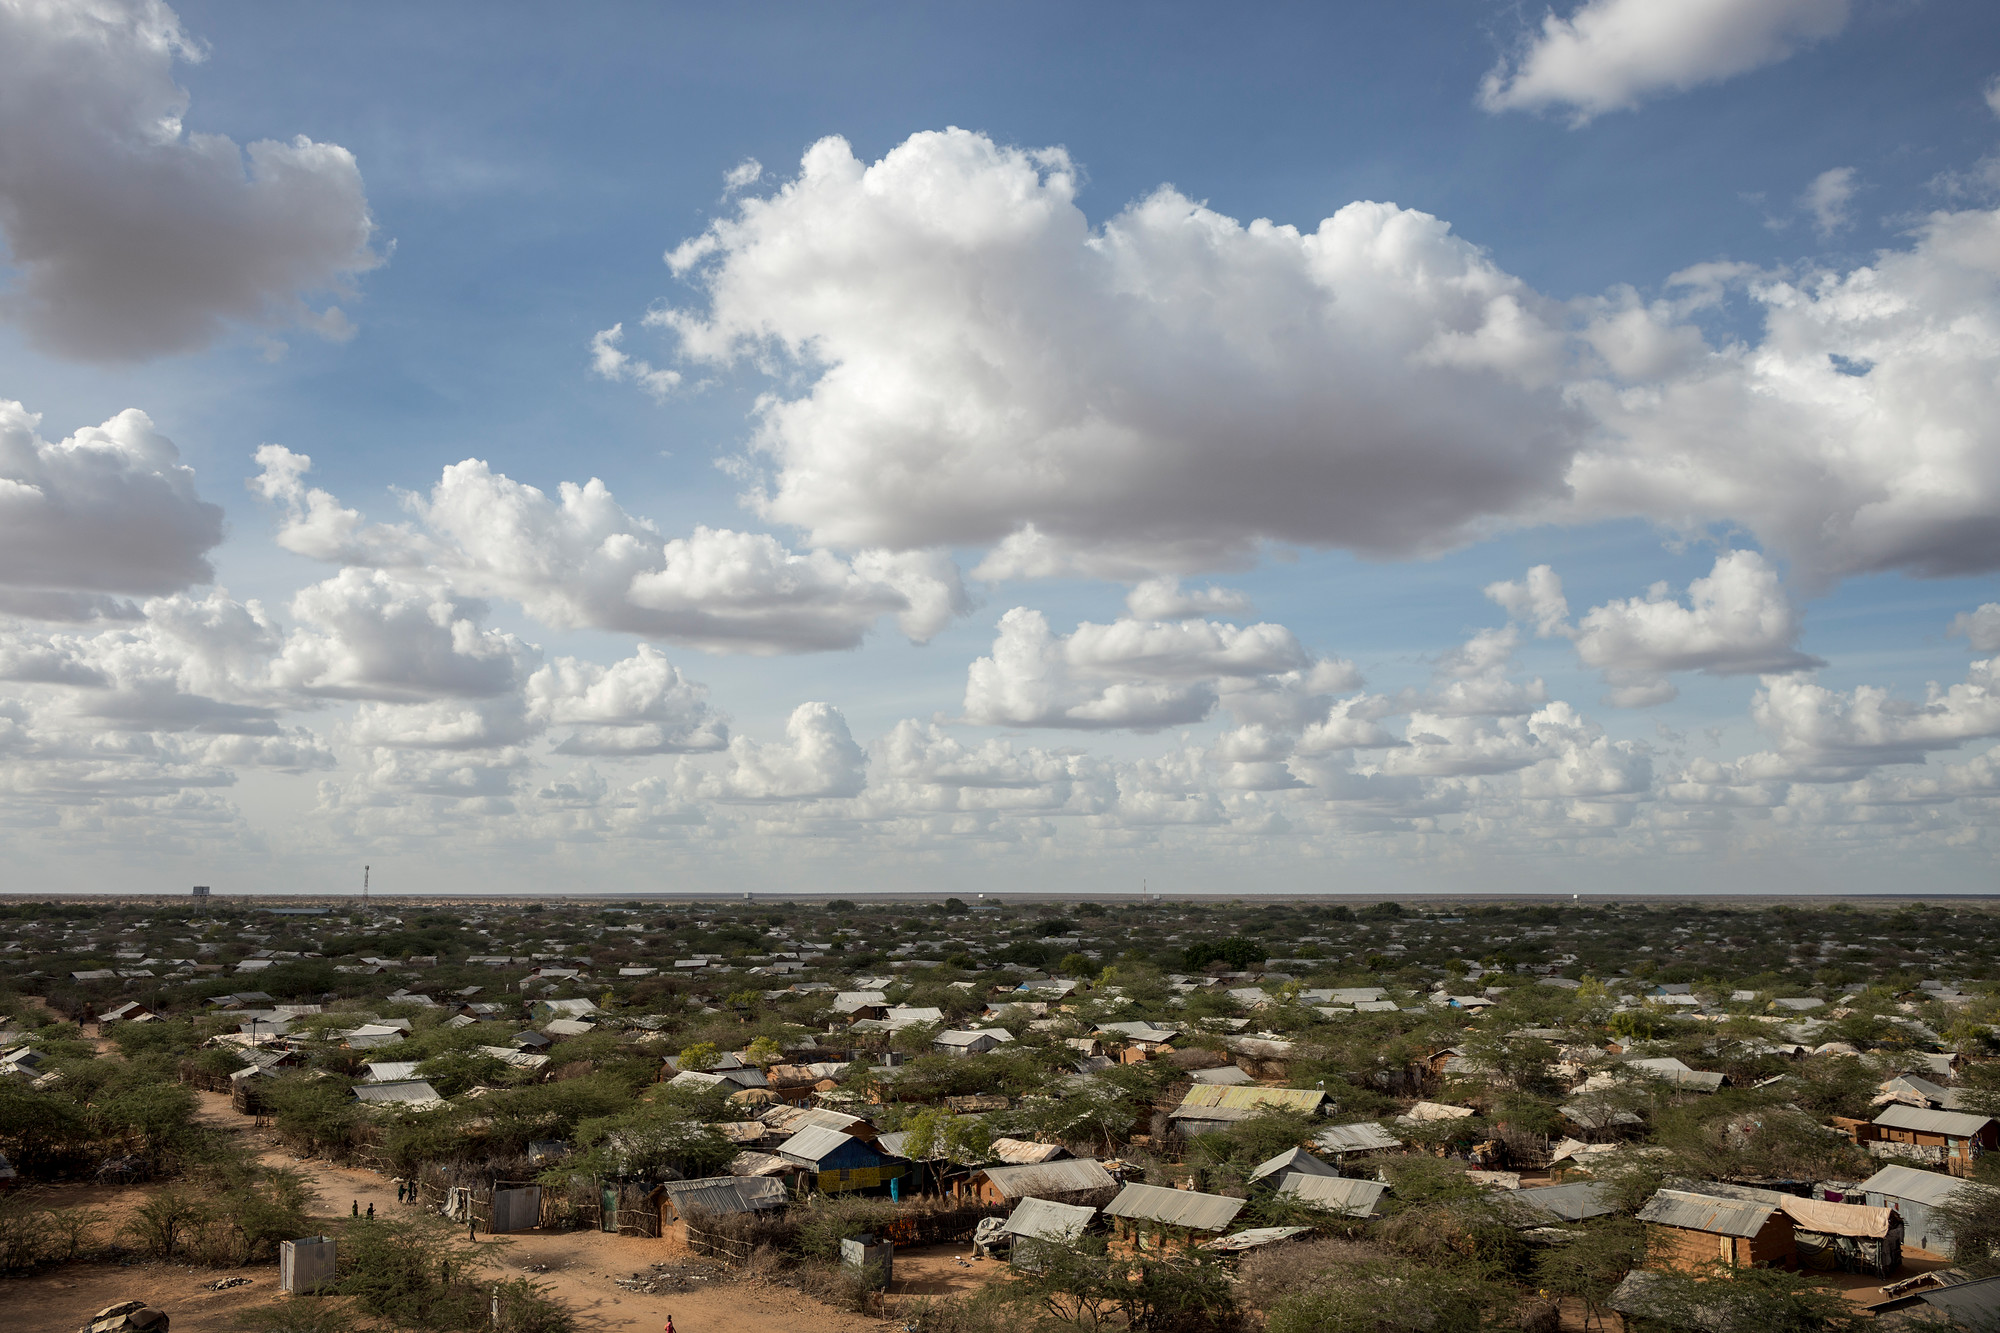 Dadaab Refugee Camp from above. Photo by CARE/Sven Torfinn